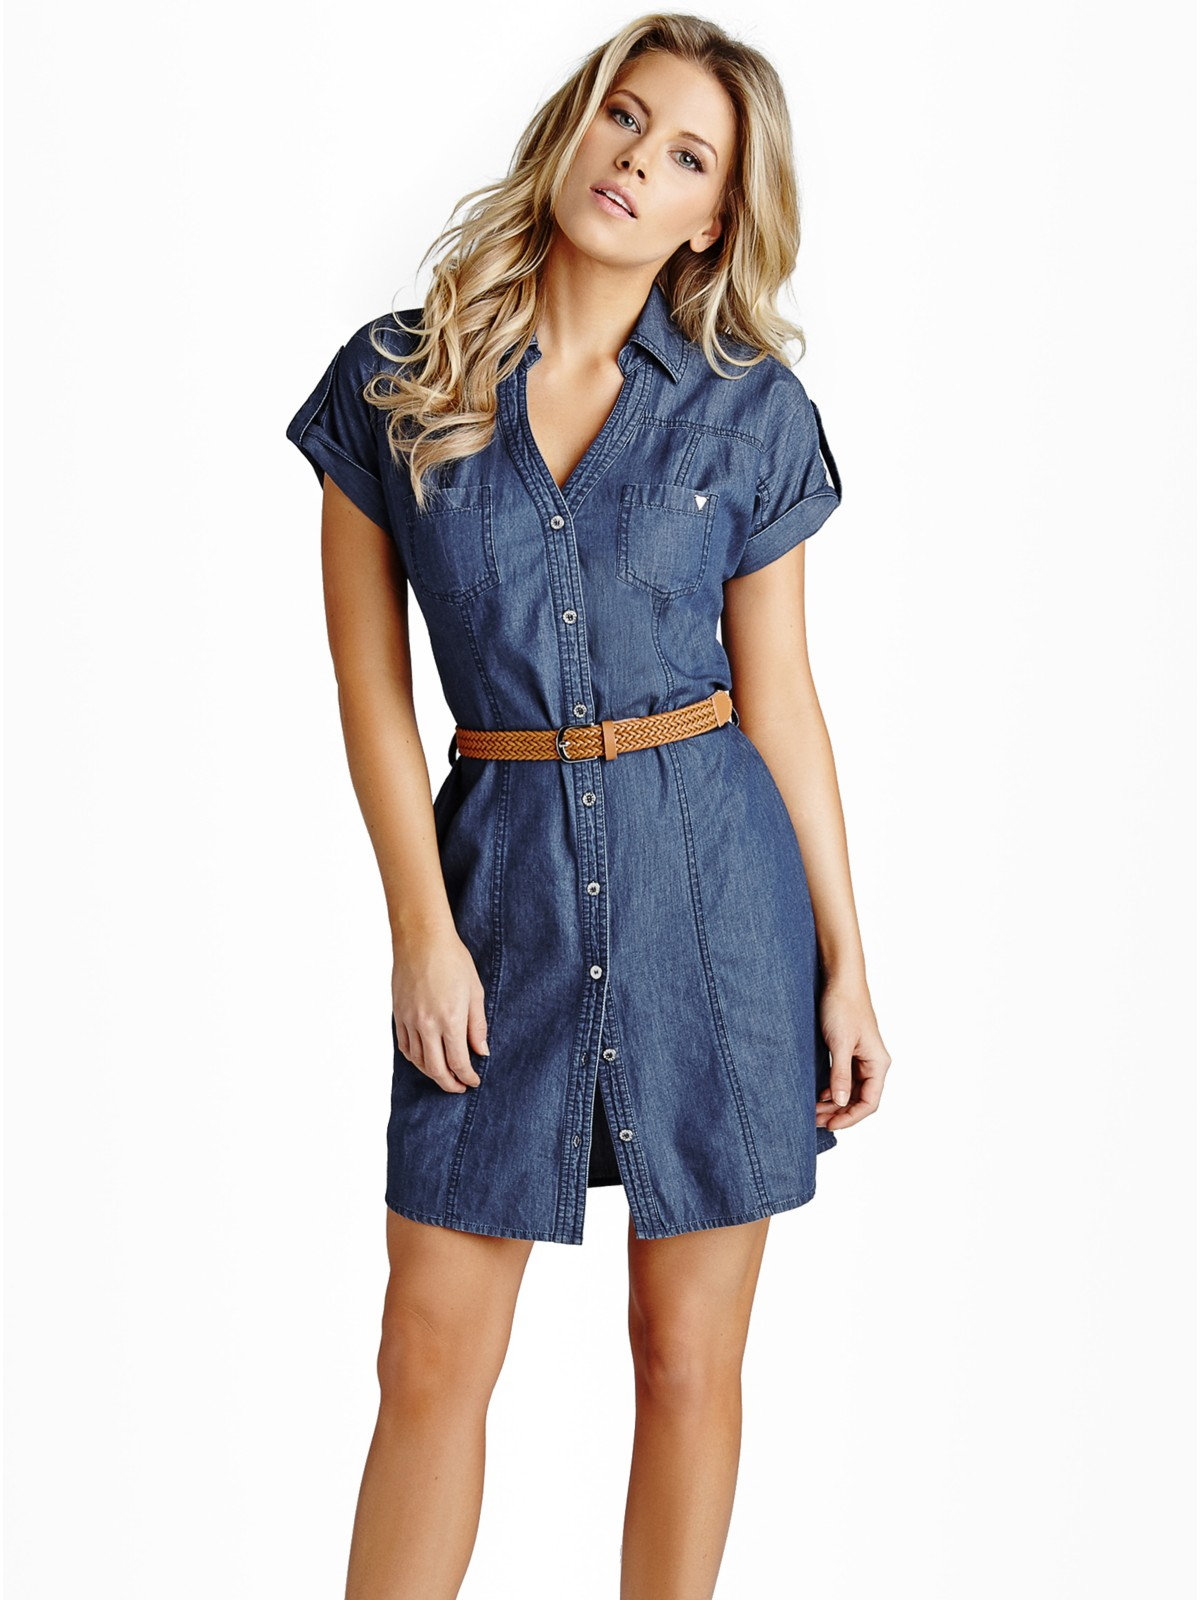 Guess women 39 s cherie chambray shirtdress ebay for Chambray 7 s